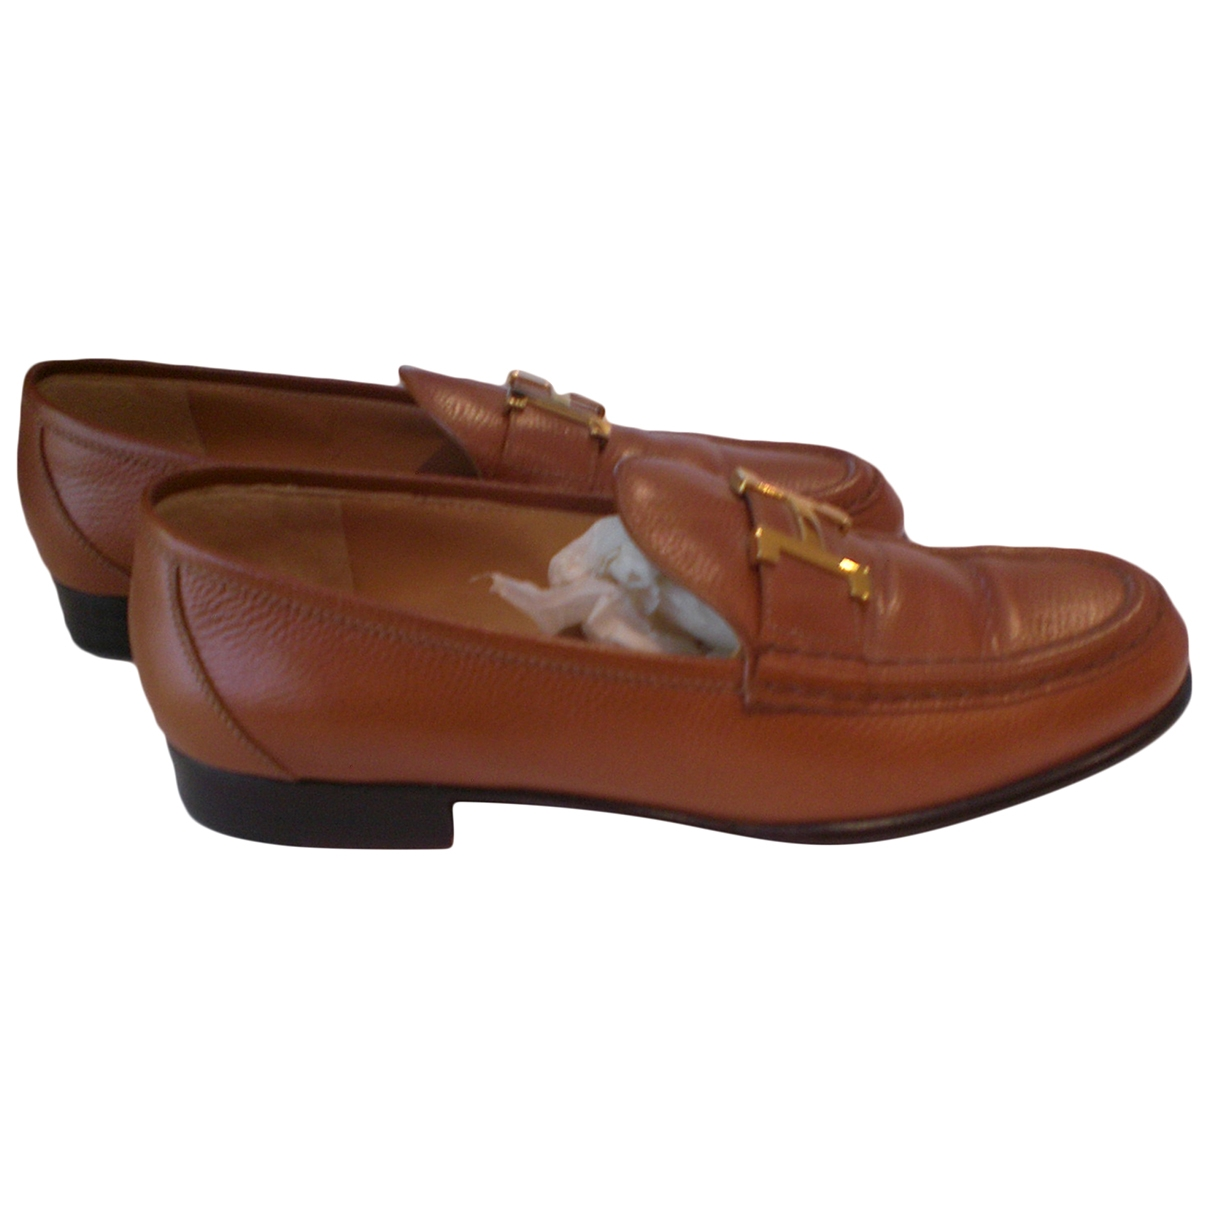 Herm??s \N Leather Flats for Women 37 EU